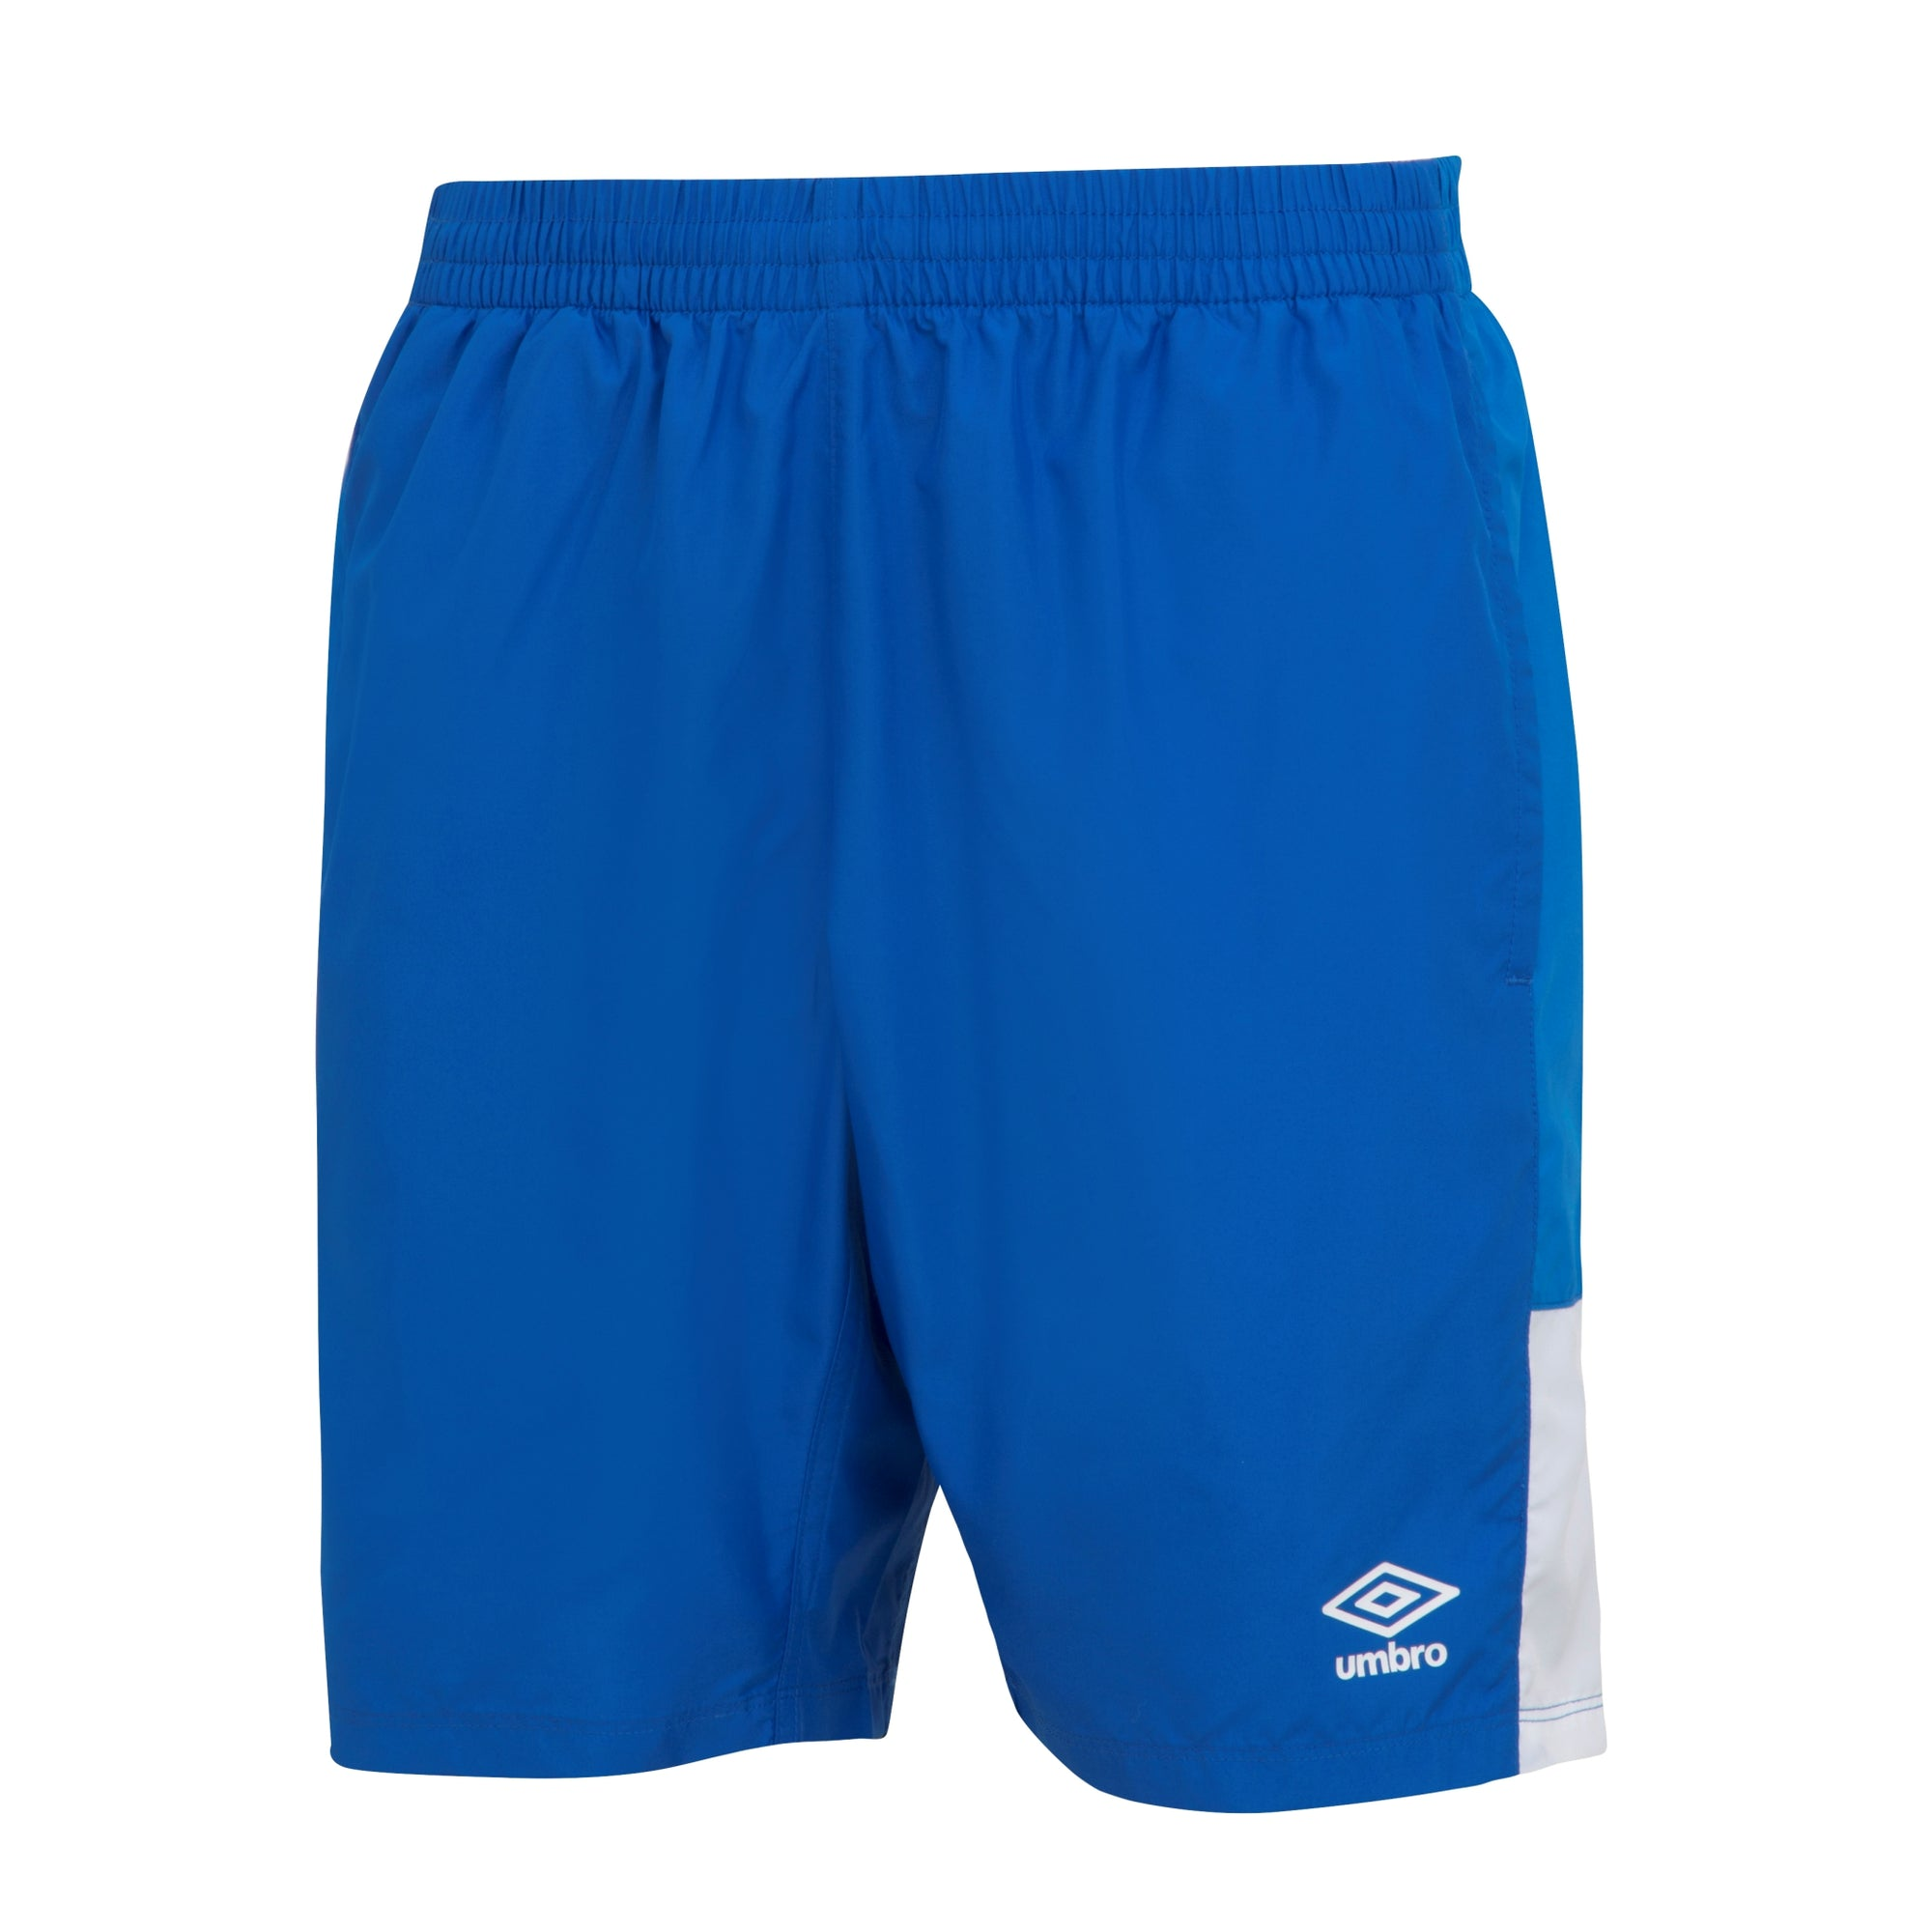 Umbro Training Short - Royal/French Blue/White